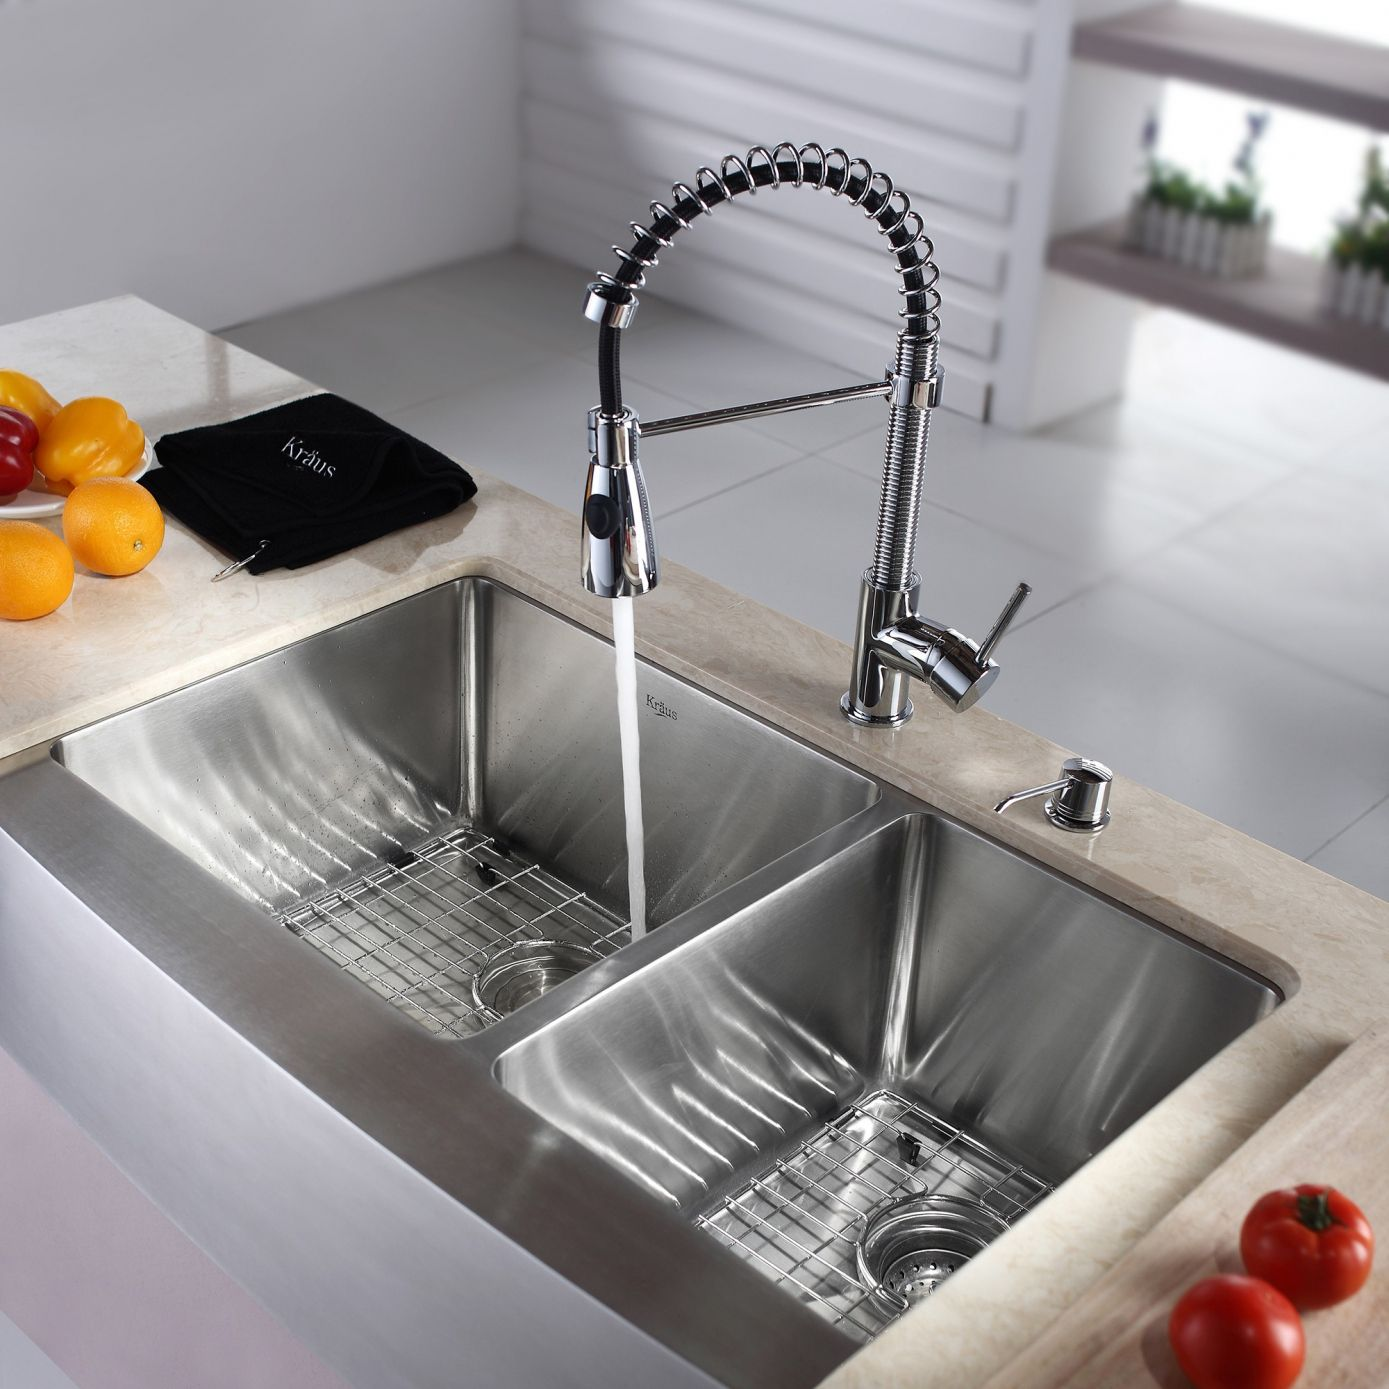 2019 Modern Kitchen Sinks Stainless Steel - Interior Paint Color ...